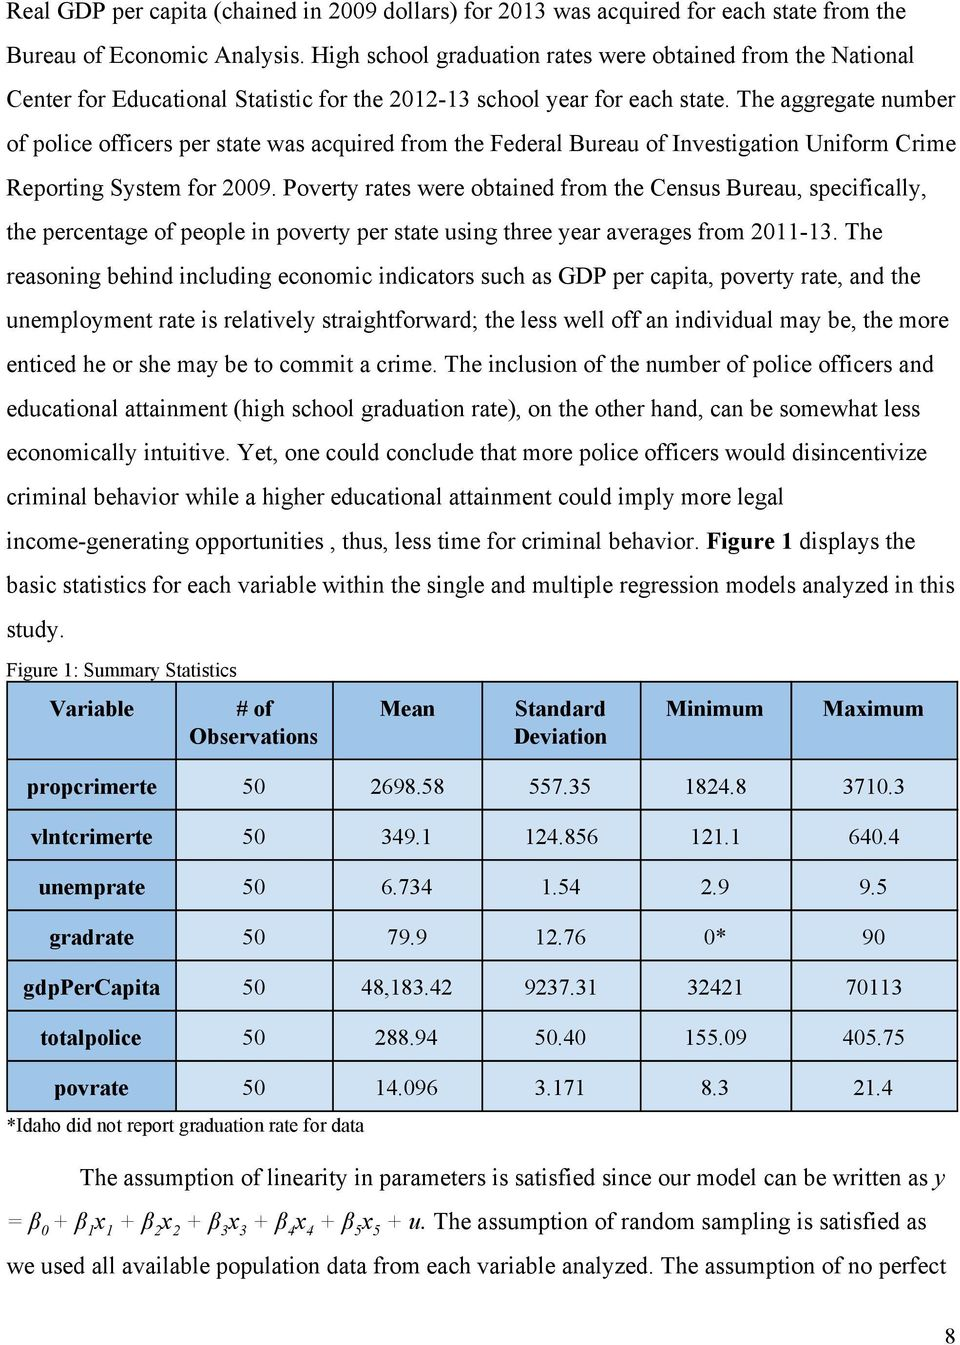 The aggregate number of police officers per state was acquired from the Federal Bureau of Investigation Uniform Crime Reporting System for 2009.